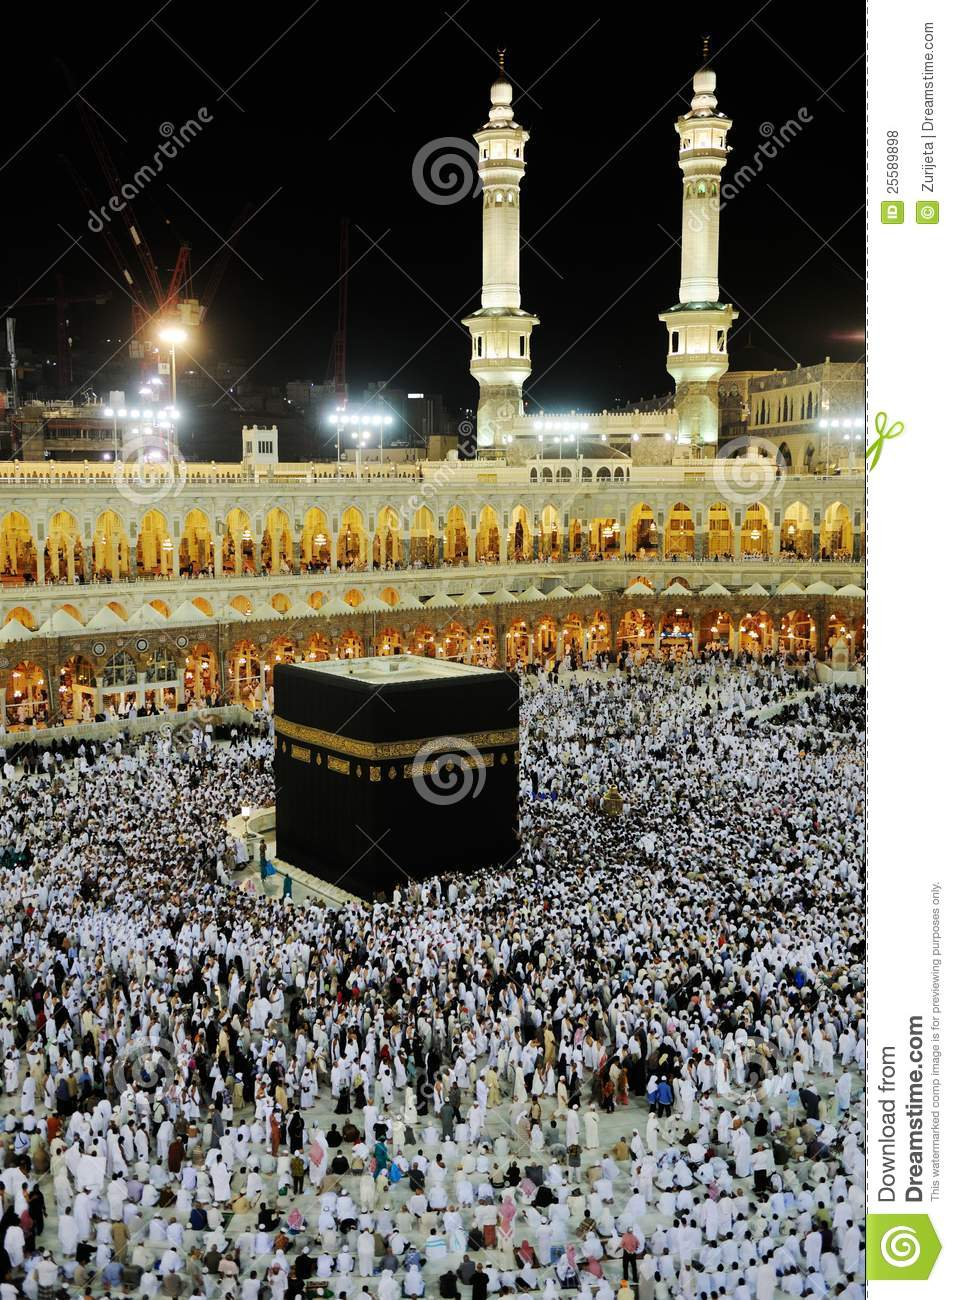 Makkah Kaaba Hajj Muslims together with Three Escargot Ready To Eat Plate Fork besides Taekwondo Girl as well Red Telephone Receiver Speech Bubble White Background in addition Modern Architecture Green Glass Elevator Looking Up Takes You To Bridge Entrance Union Station Kansas City. on thumbs a print